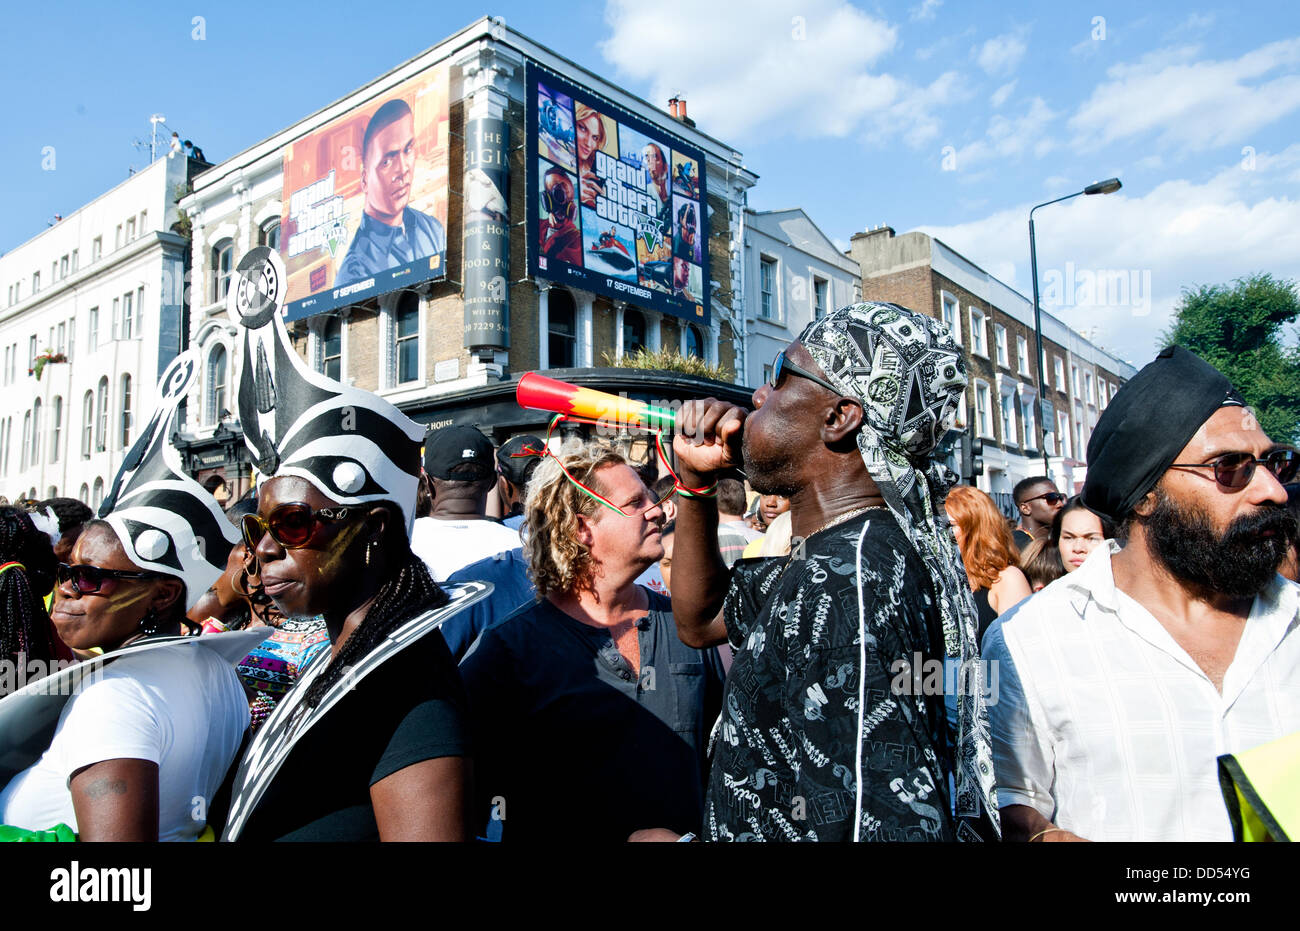 London, UK - 26 August 2013: a man plays a horn during the annual parade at the Notting Hill Carnival. - Stock Image